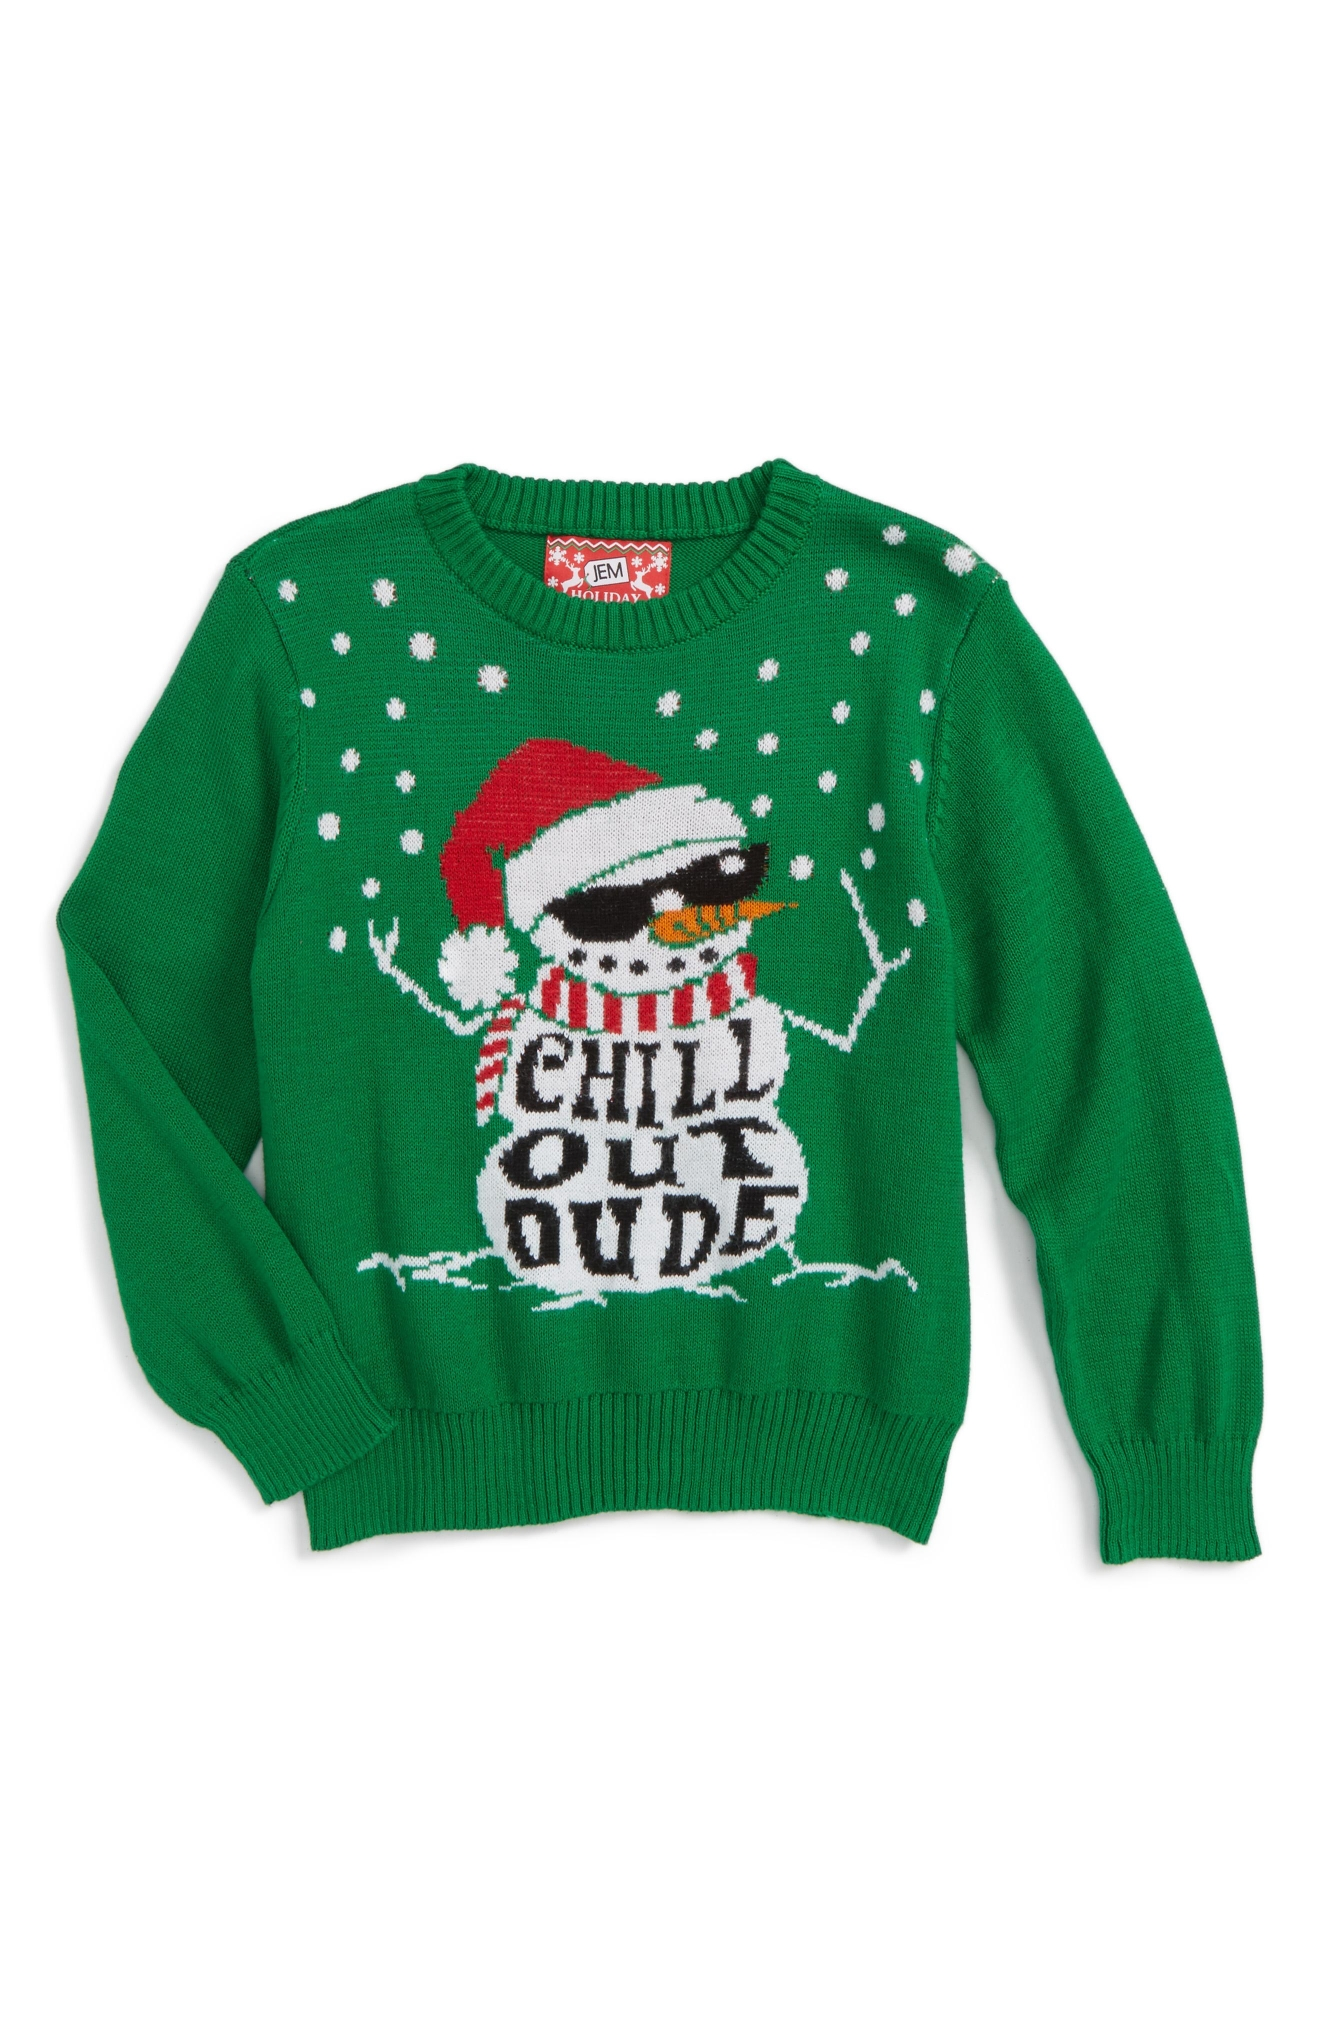 Jem Chill Out Dude Sweater (Toddler Boys & Little Boys), $32 (Photo: Nordstrom)